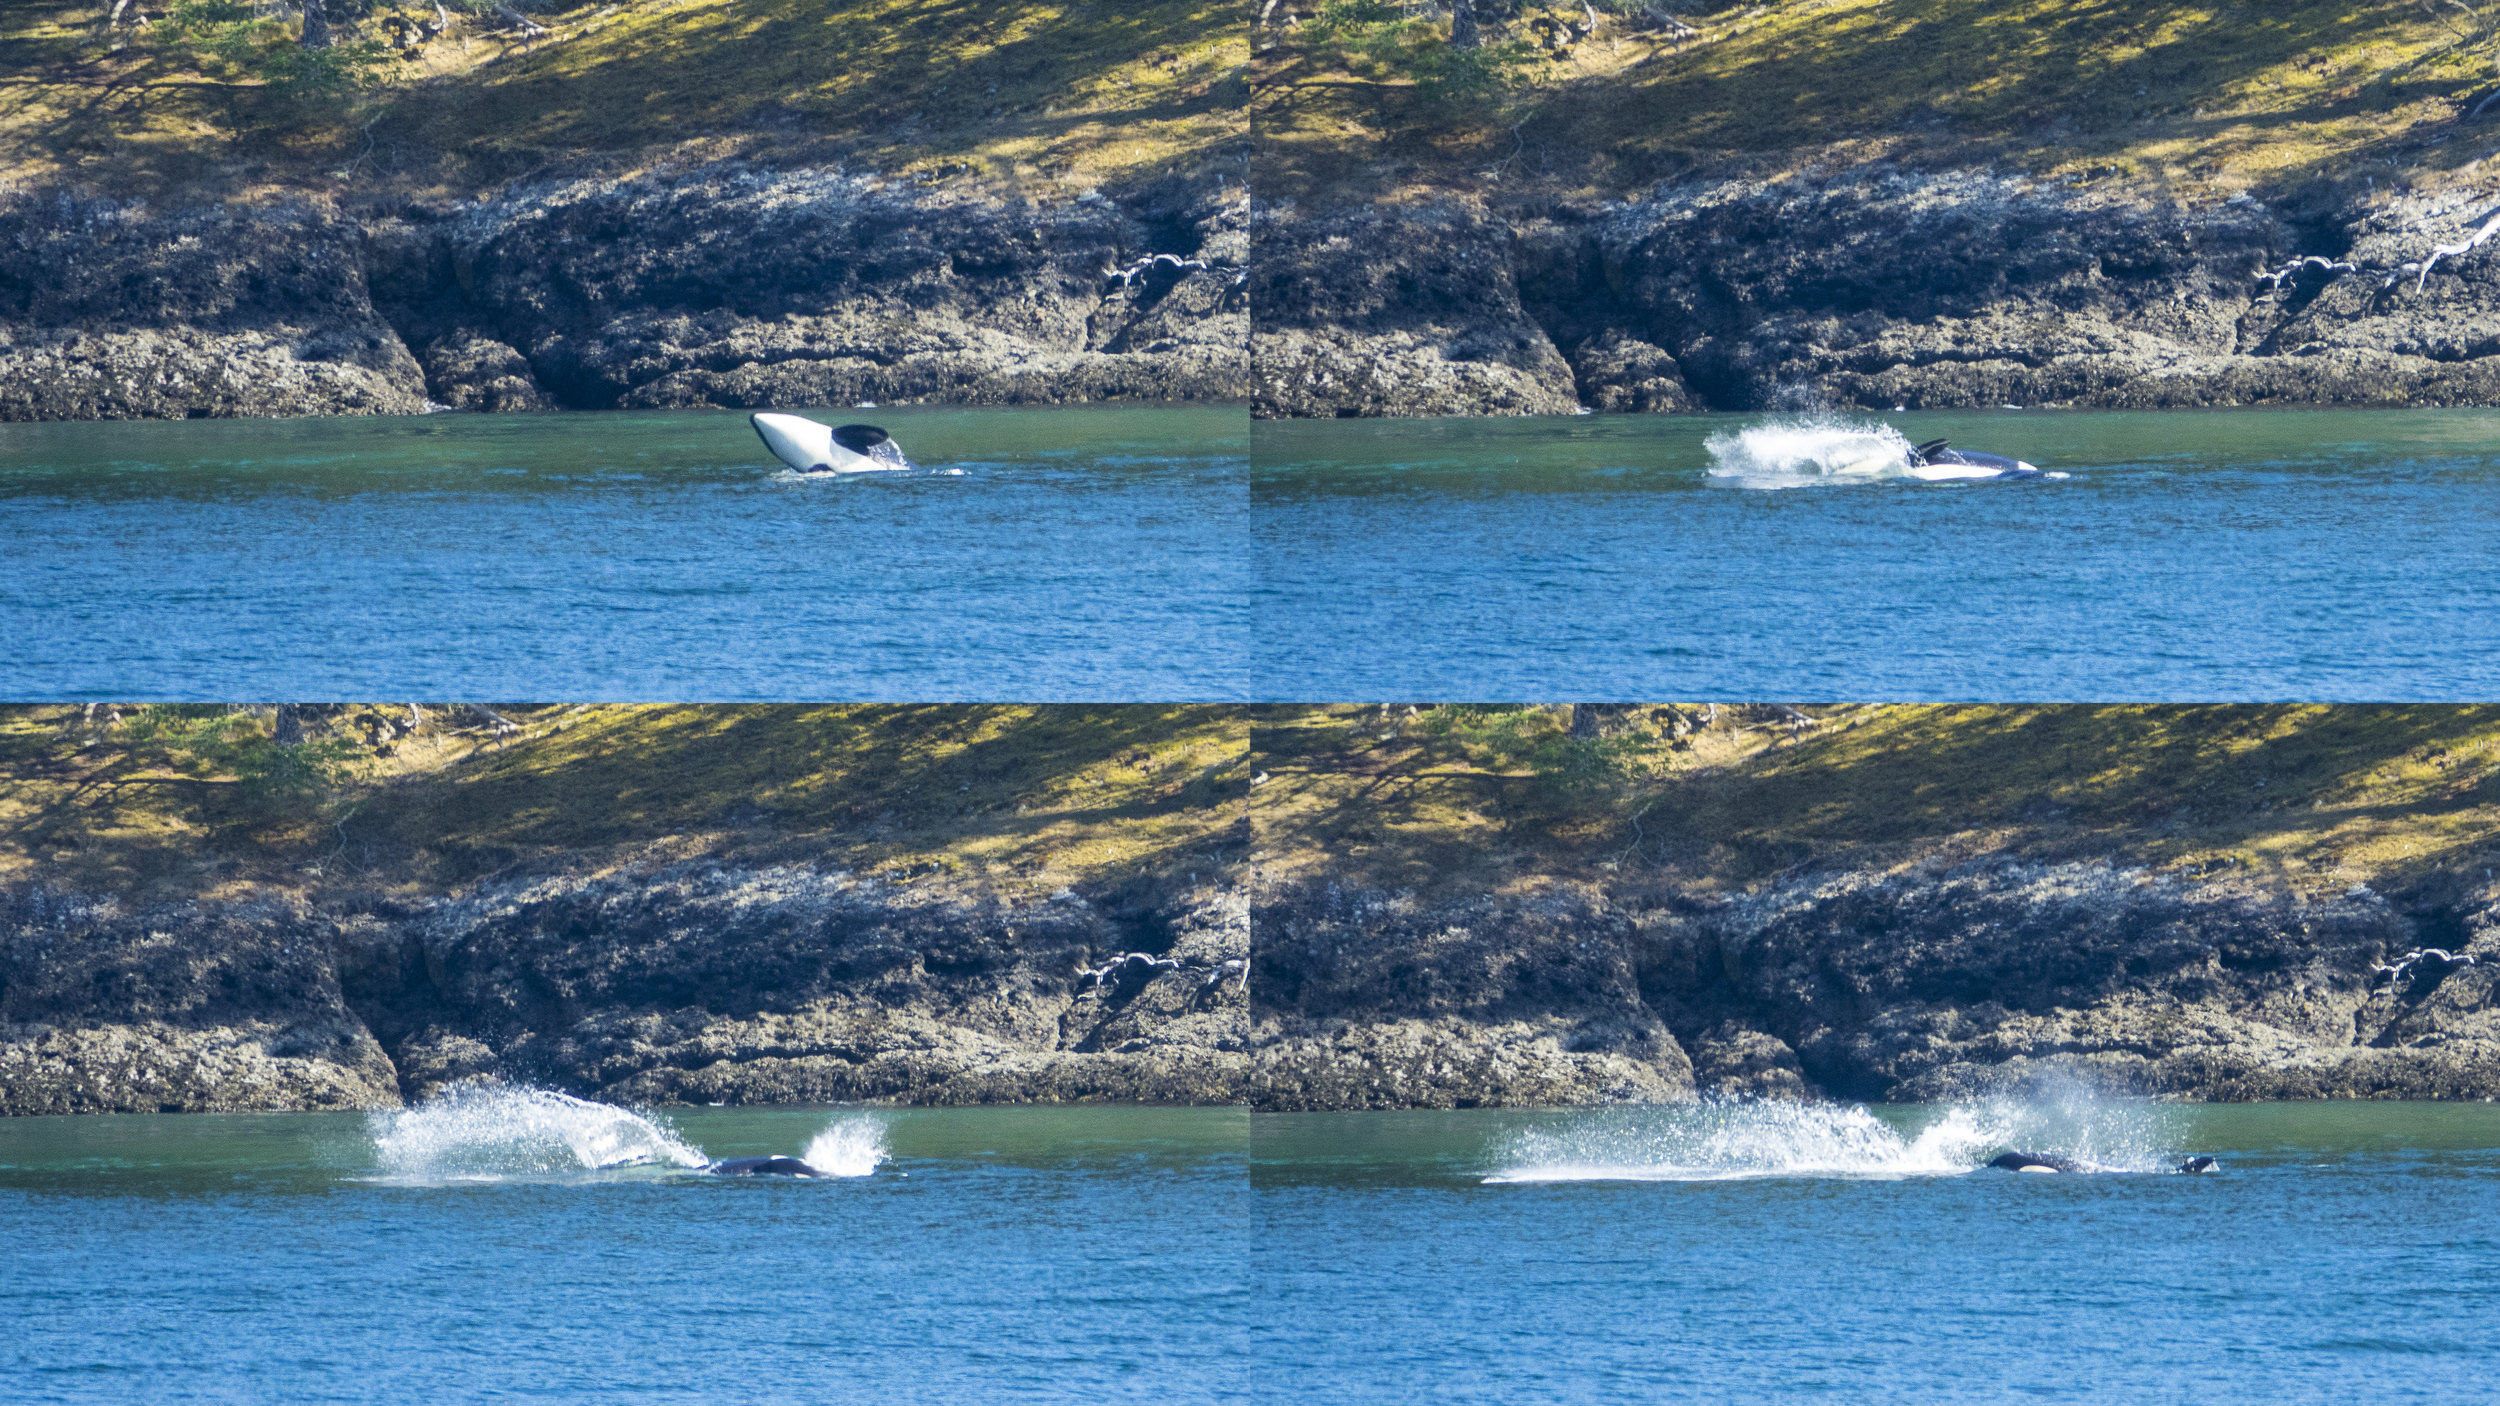 I put together this composite of a set of four successive pics - whales at play!